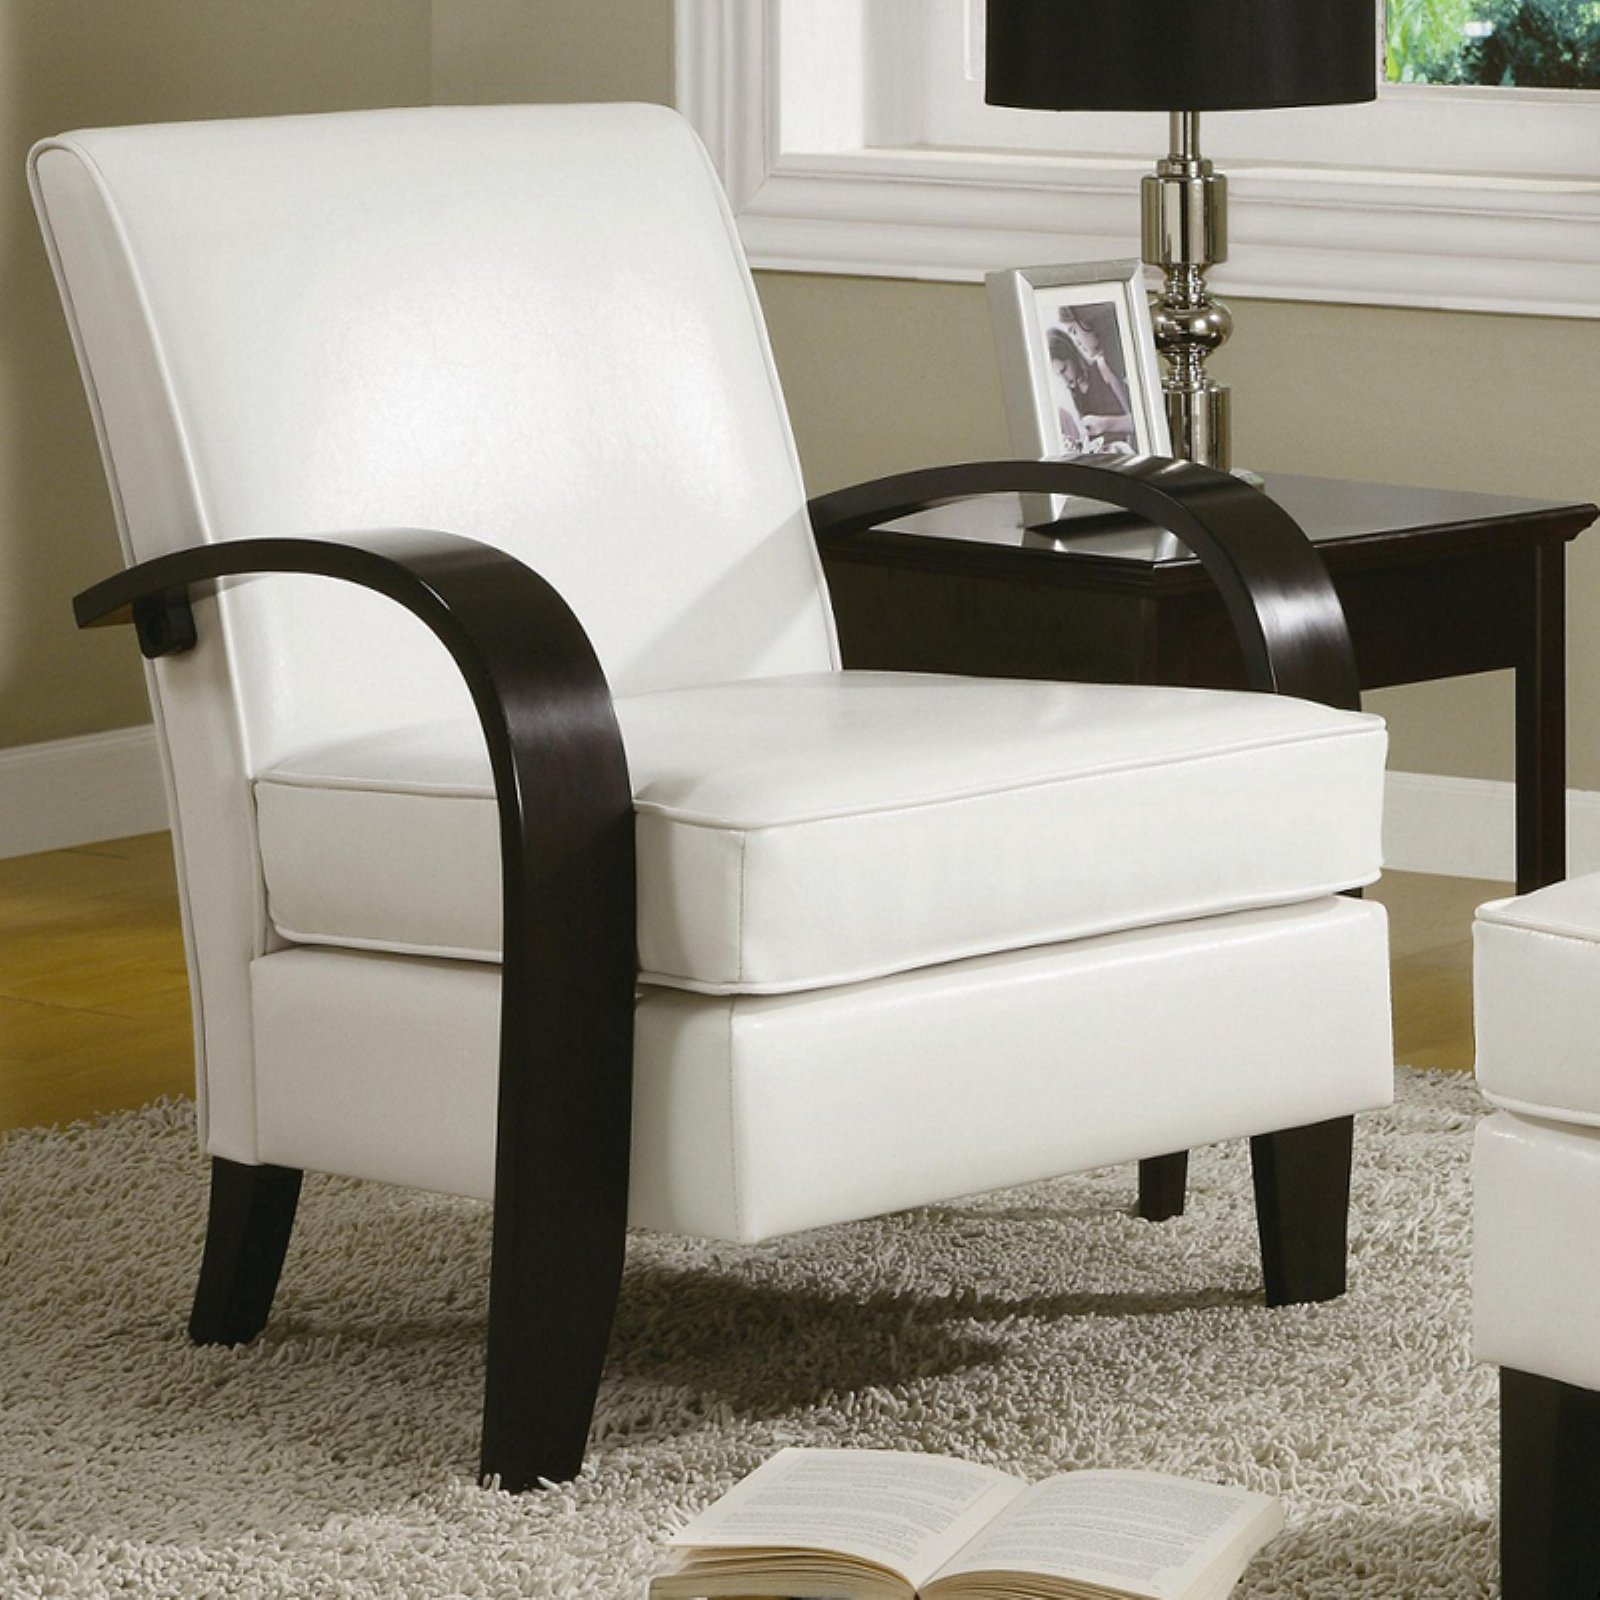 Roundhill Wonda Bonded Leather Accent Arm Chair with Ottoman, Multiple Colors Available